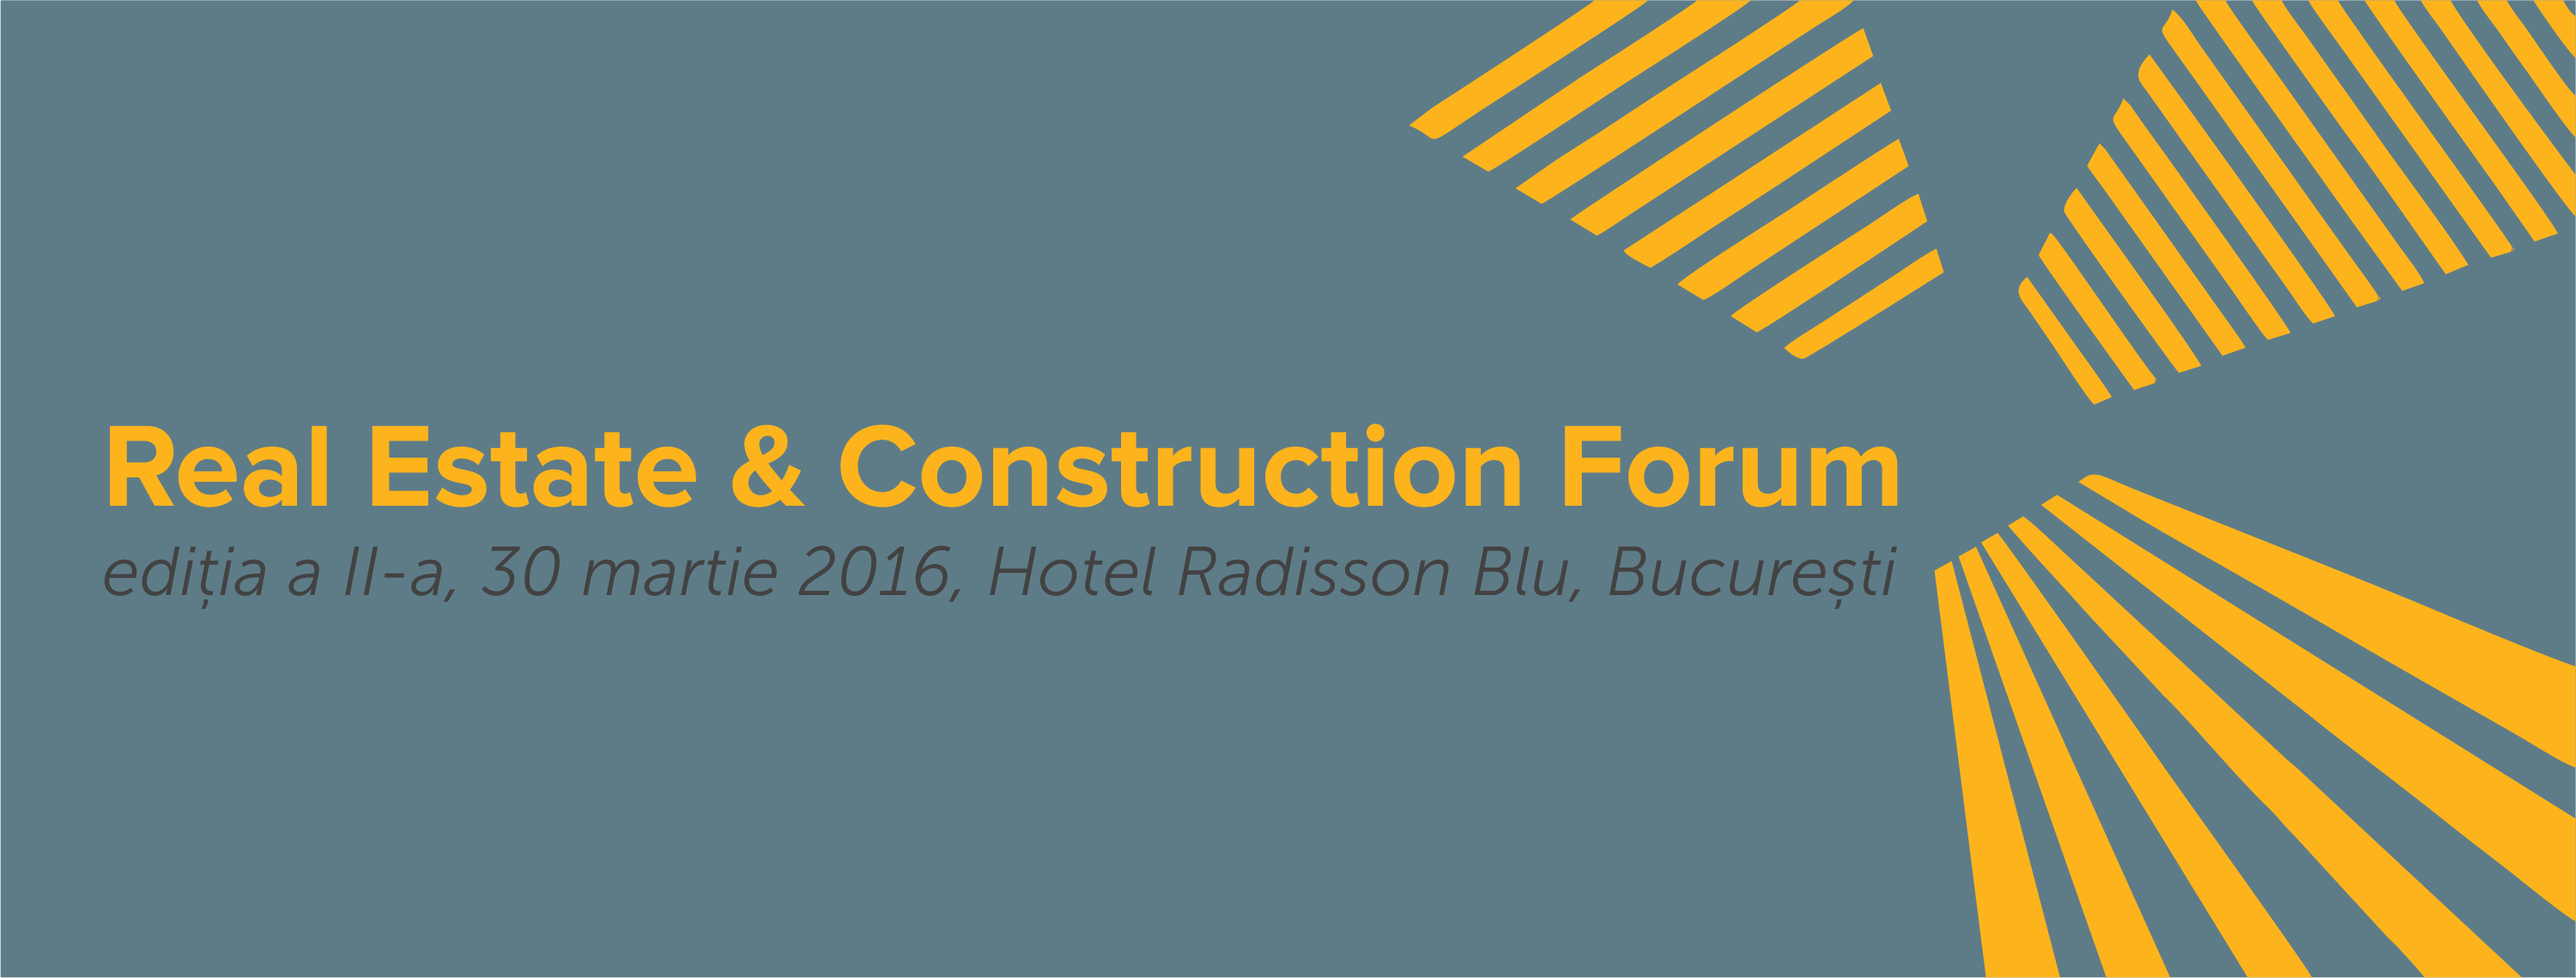 Real estate & Construction Forum, Ediția a II-a